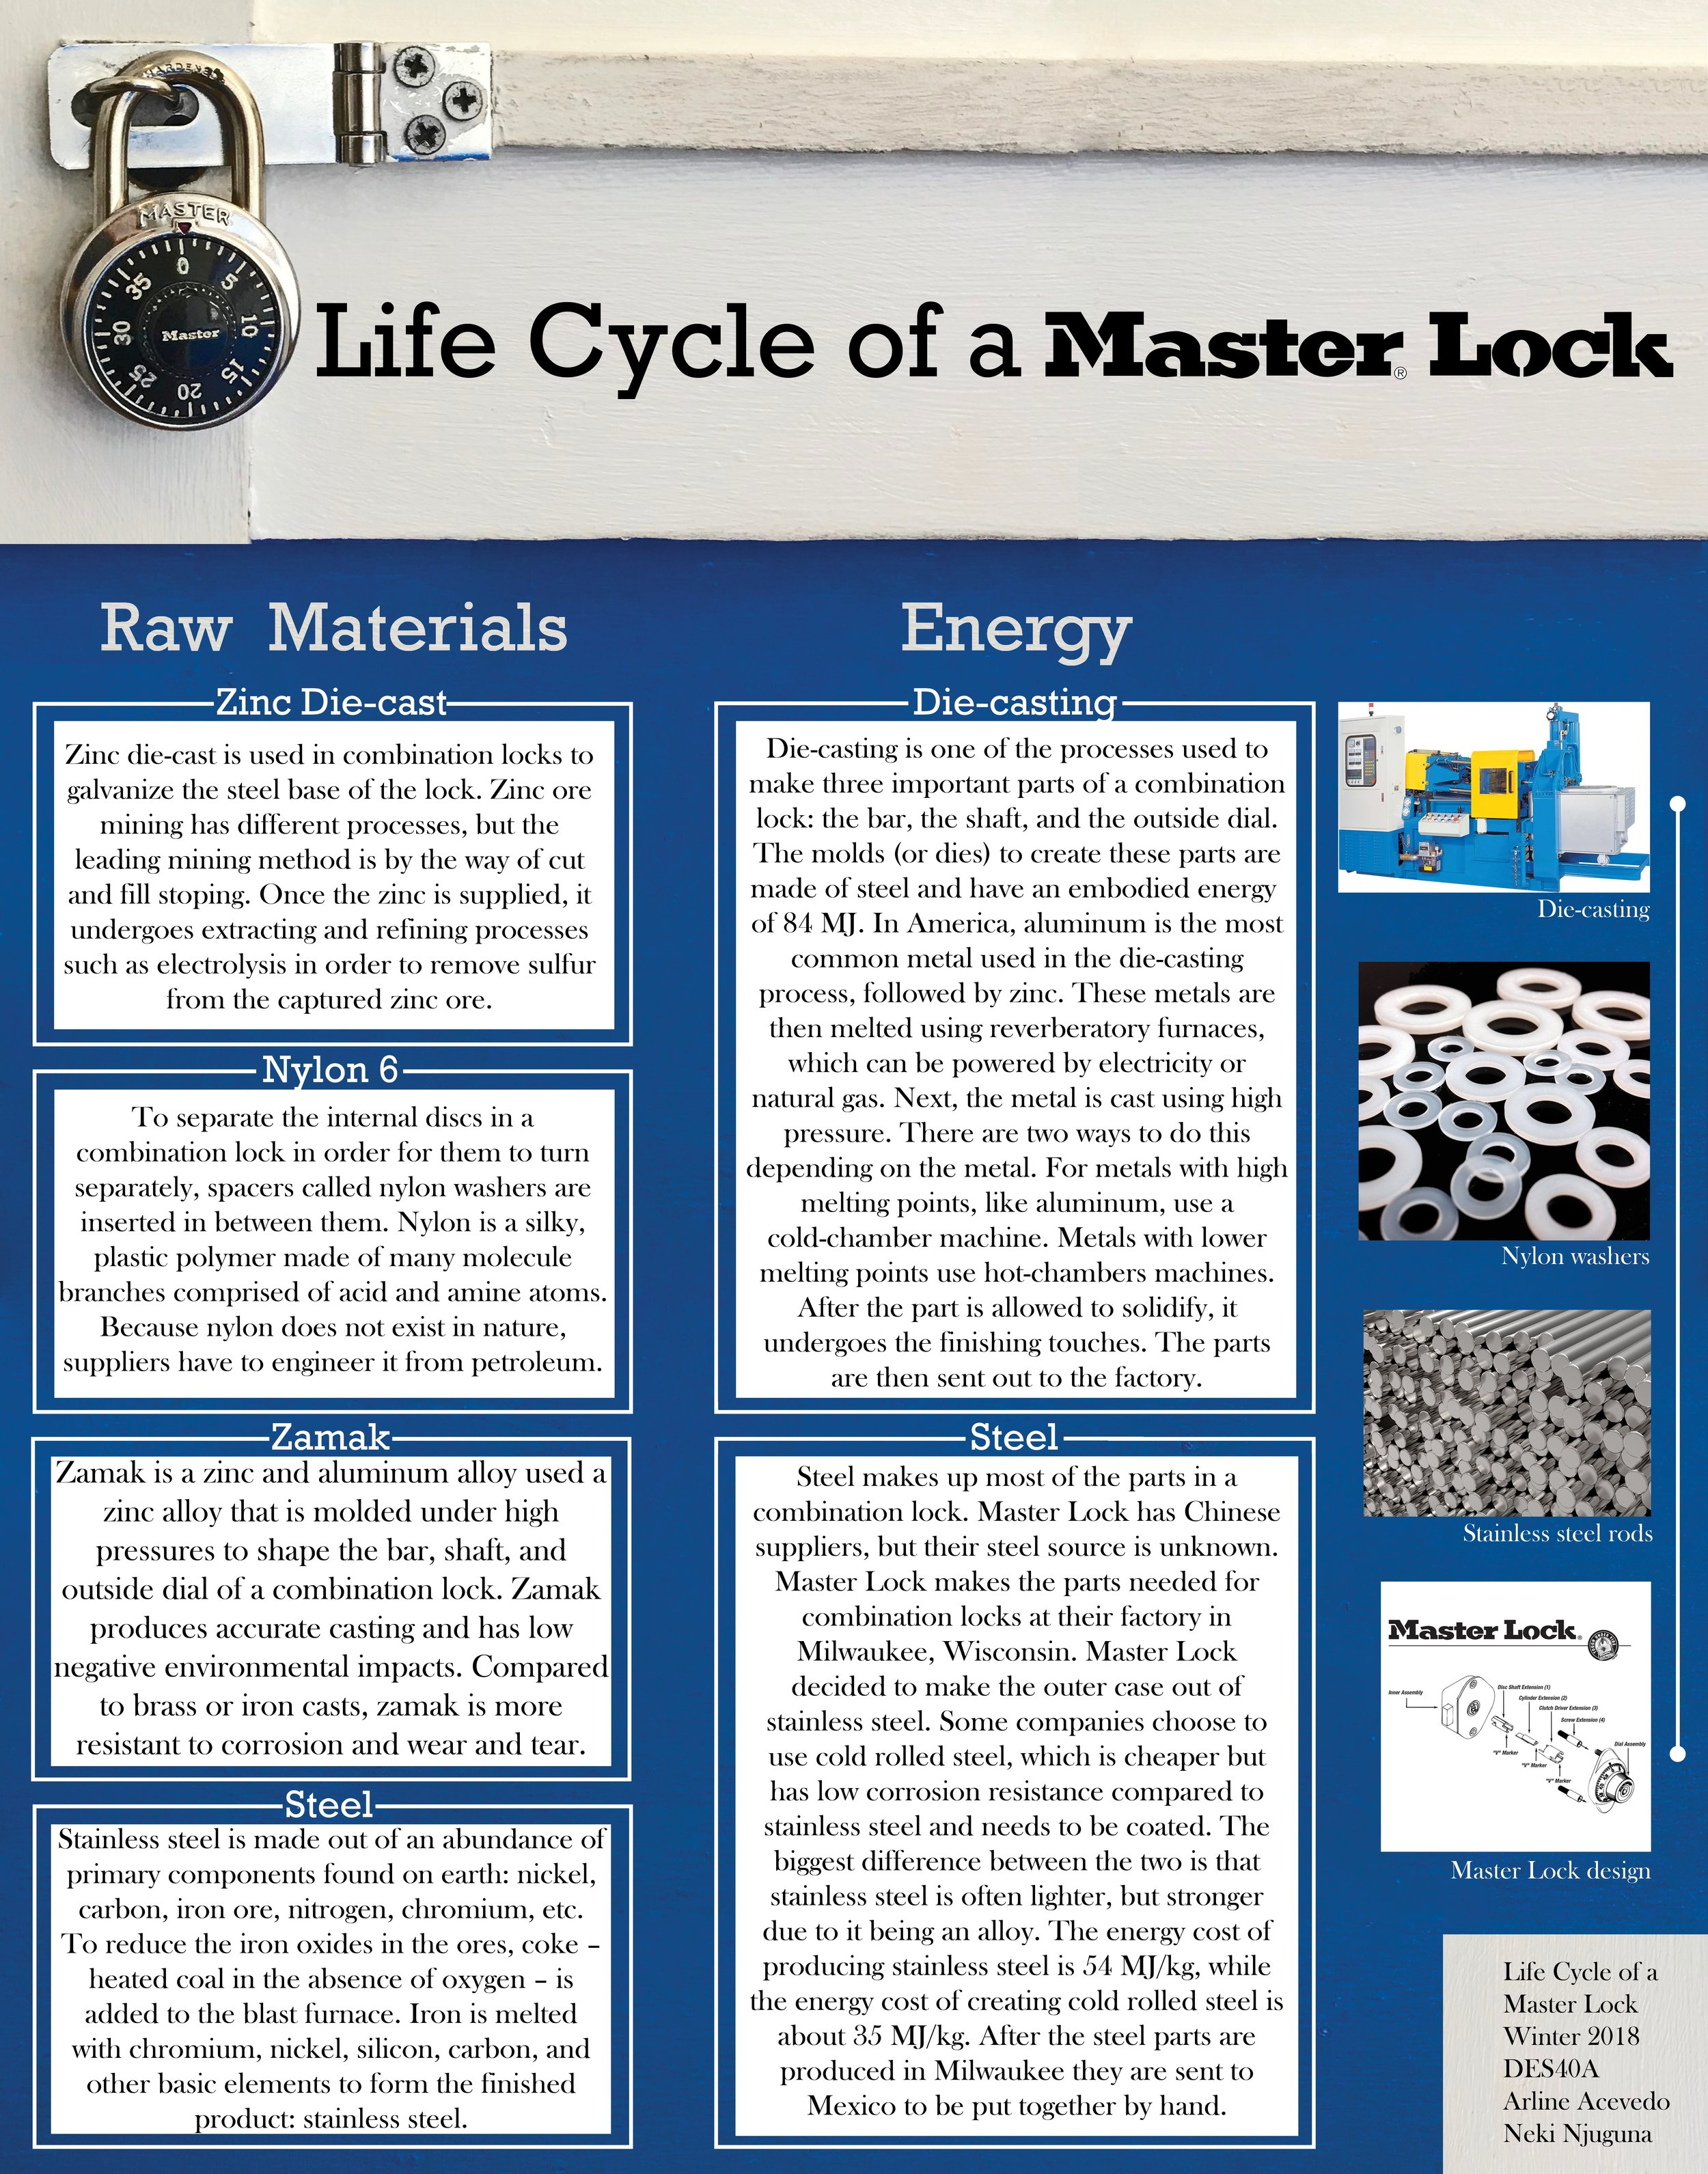 Master Lock — Design Life-Cycle